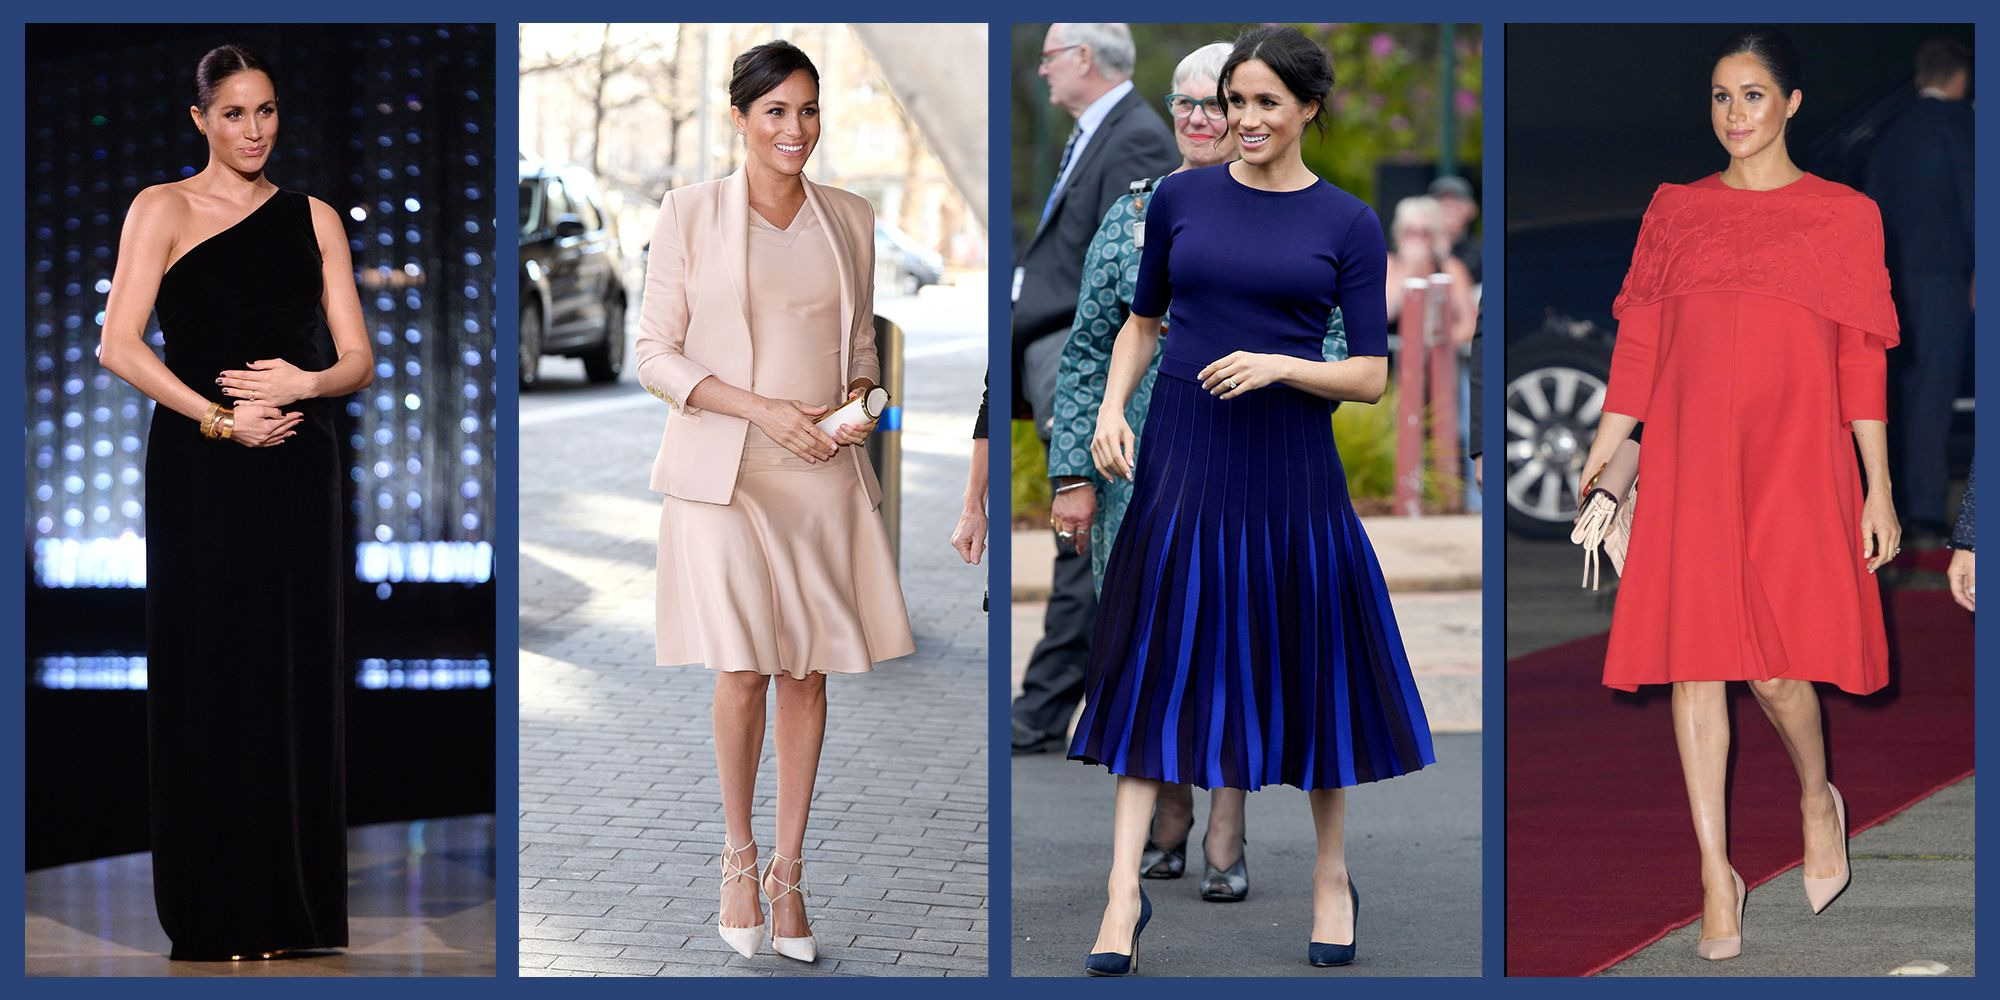 d826ea6afdf Why Meghan Markle Rarely Wears Maternity Clothes - Meghan Markle Wearing  Hatch Collection